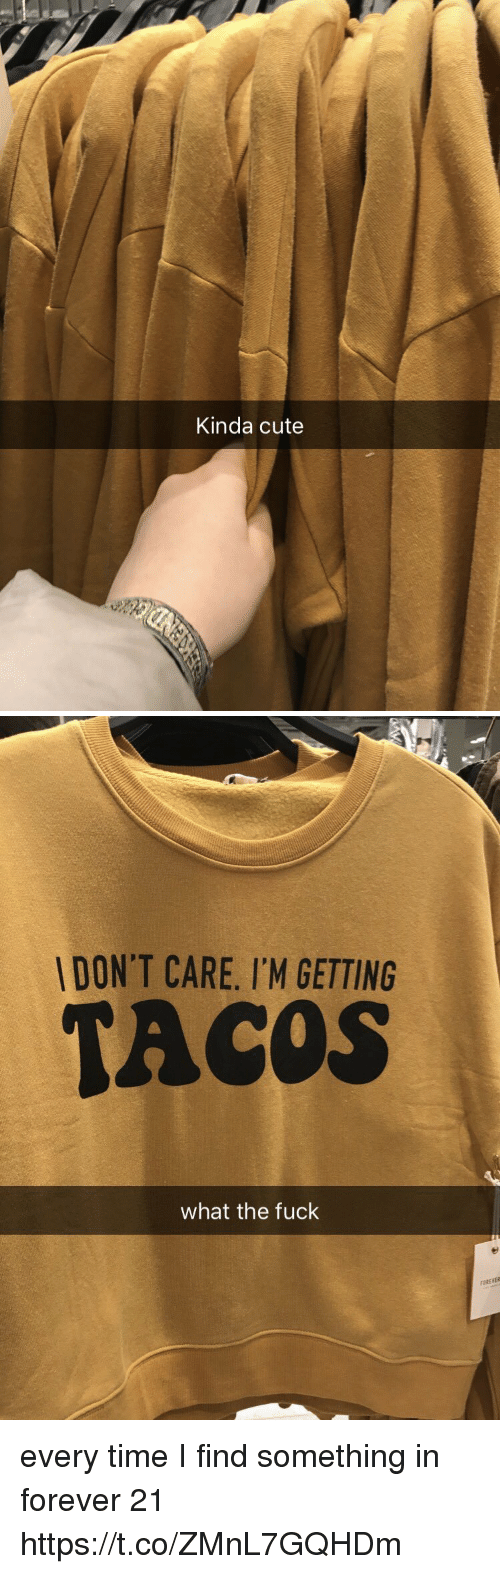 Cute, Forever, and Forever 21: Kinda cute   DON'T CARE. I'M GETTING  TACOS  what the fuck  FOREVER every time I find something in forever 21 https://t.co/ZMnL7GQHDm